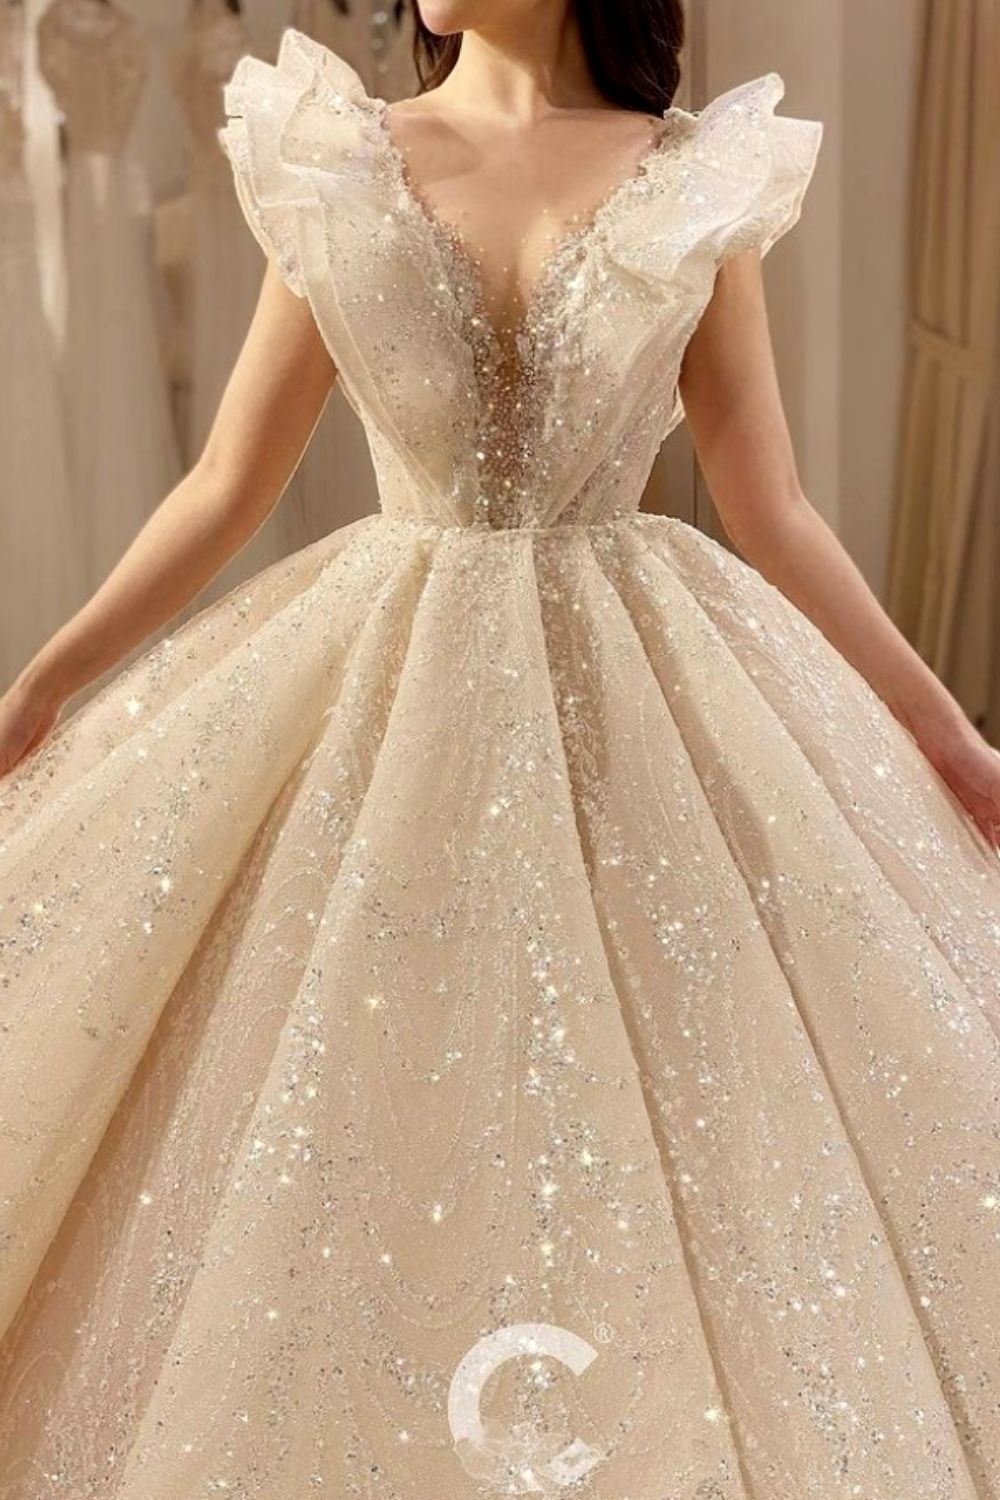 21 Romantic Wedding Dress Ideas Trends 2021 You Need To Know Your Classy L In 2021 Gorgeous Wedding Dress Princesses Wedding Dresses Princess Ballgown Dreamy Dress [ 1500 x 1000 Pixel ]